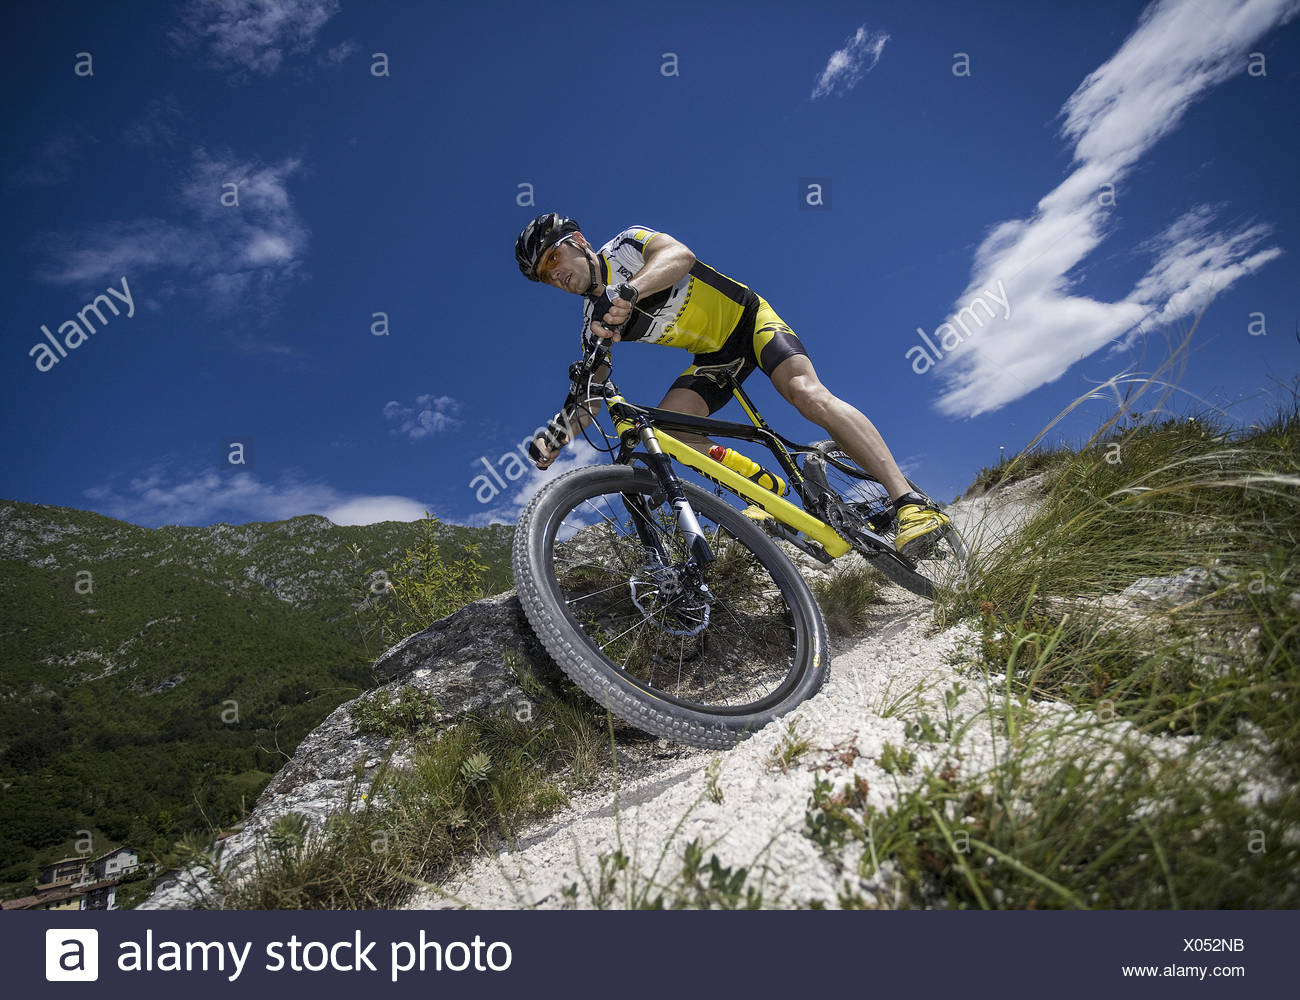 Mann mit Mountainbike im Gebirge (model-released) - Stock Image